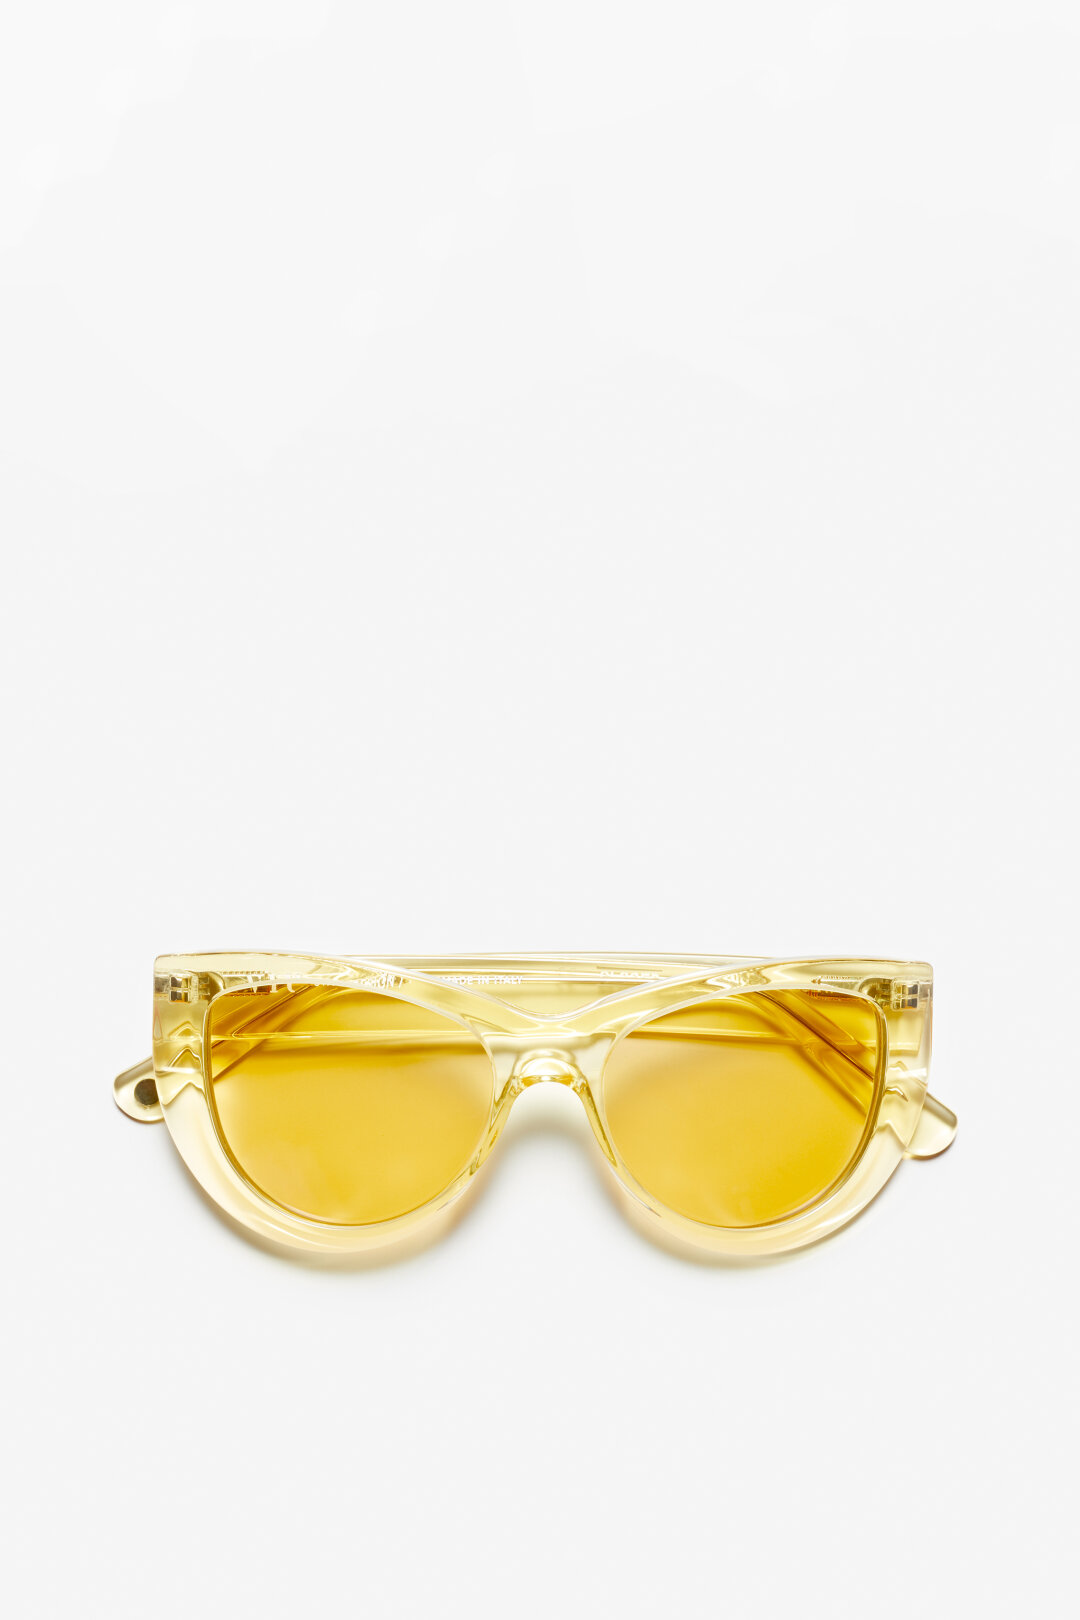 Closed x VIU Sunglasses THE OPTIMISTE